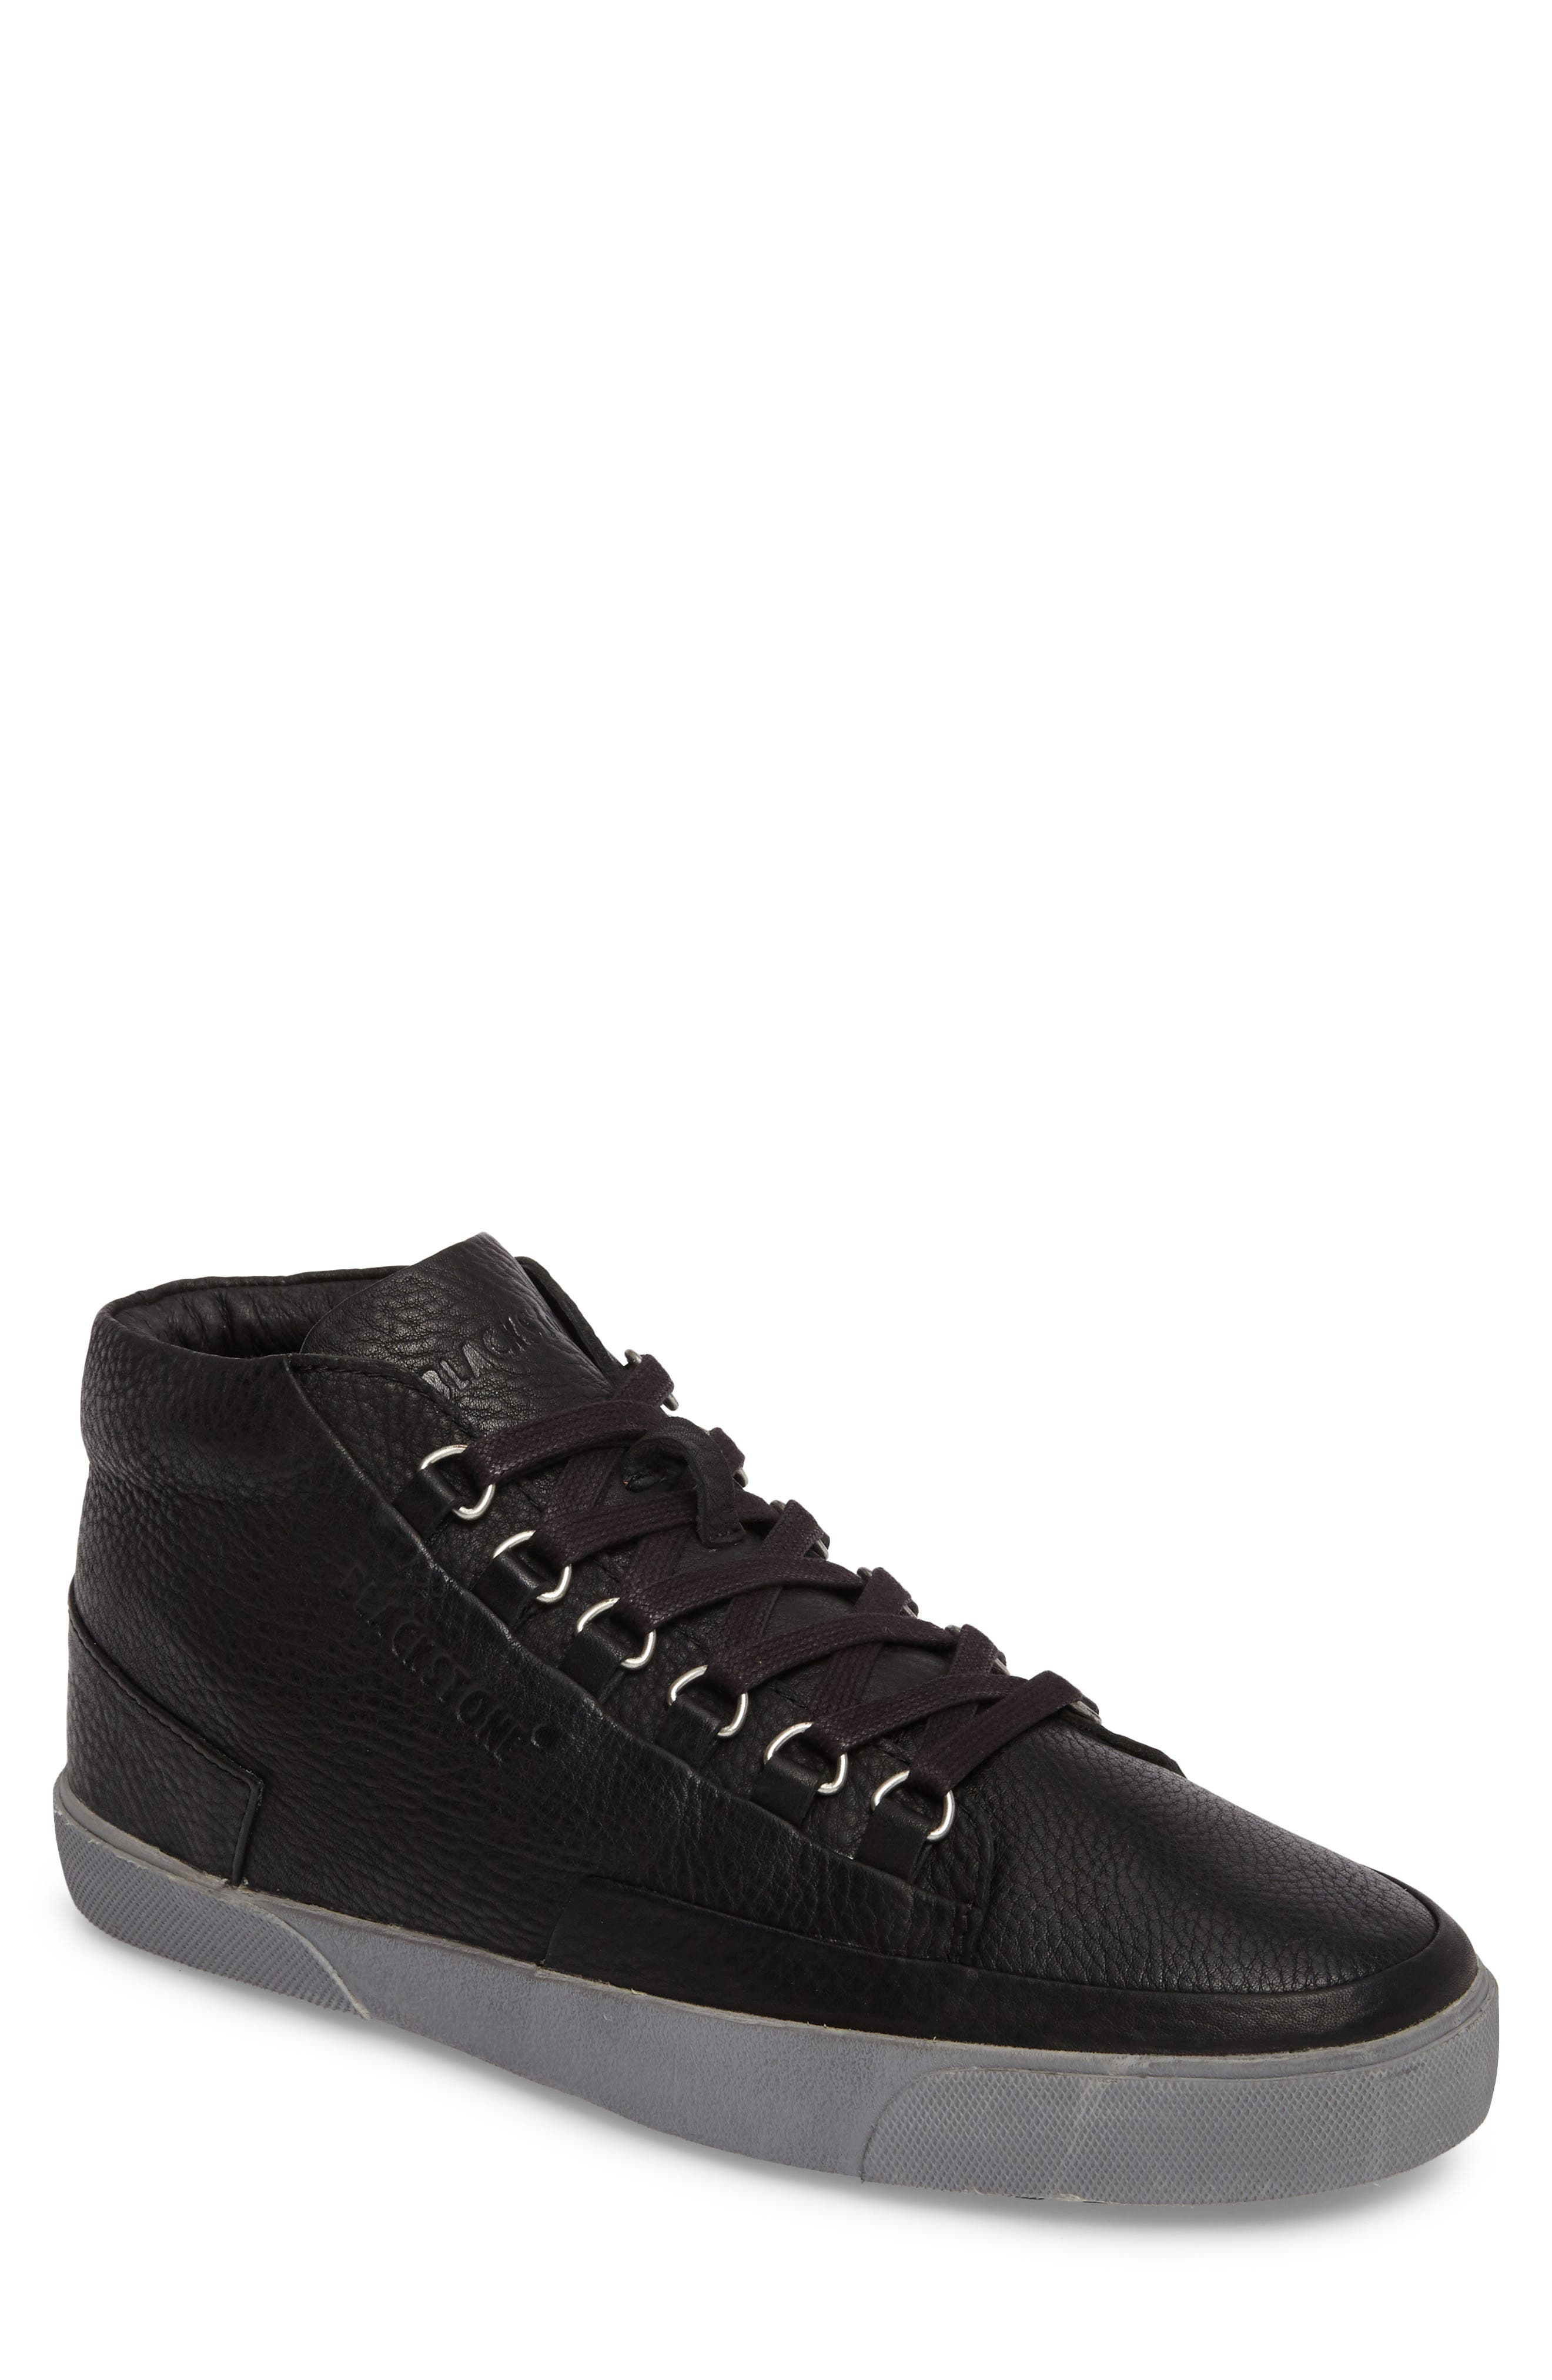 KM 02 Sneaker with Genuine Shearling Lining,                             Main thumbnail 1, color,                             Black Leather